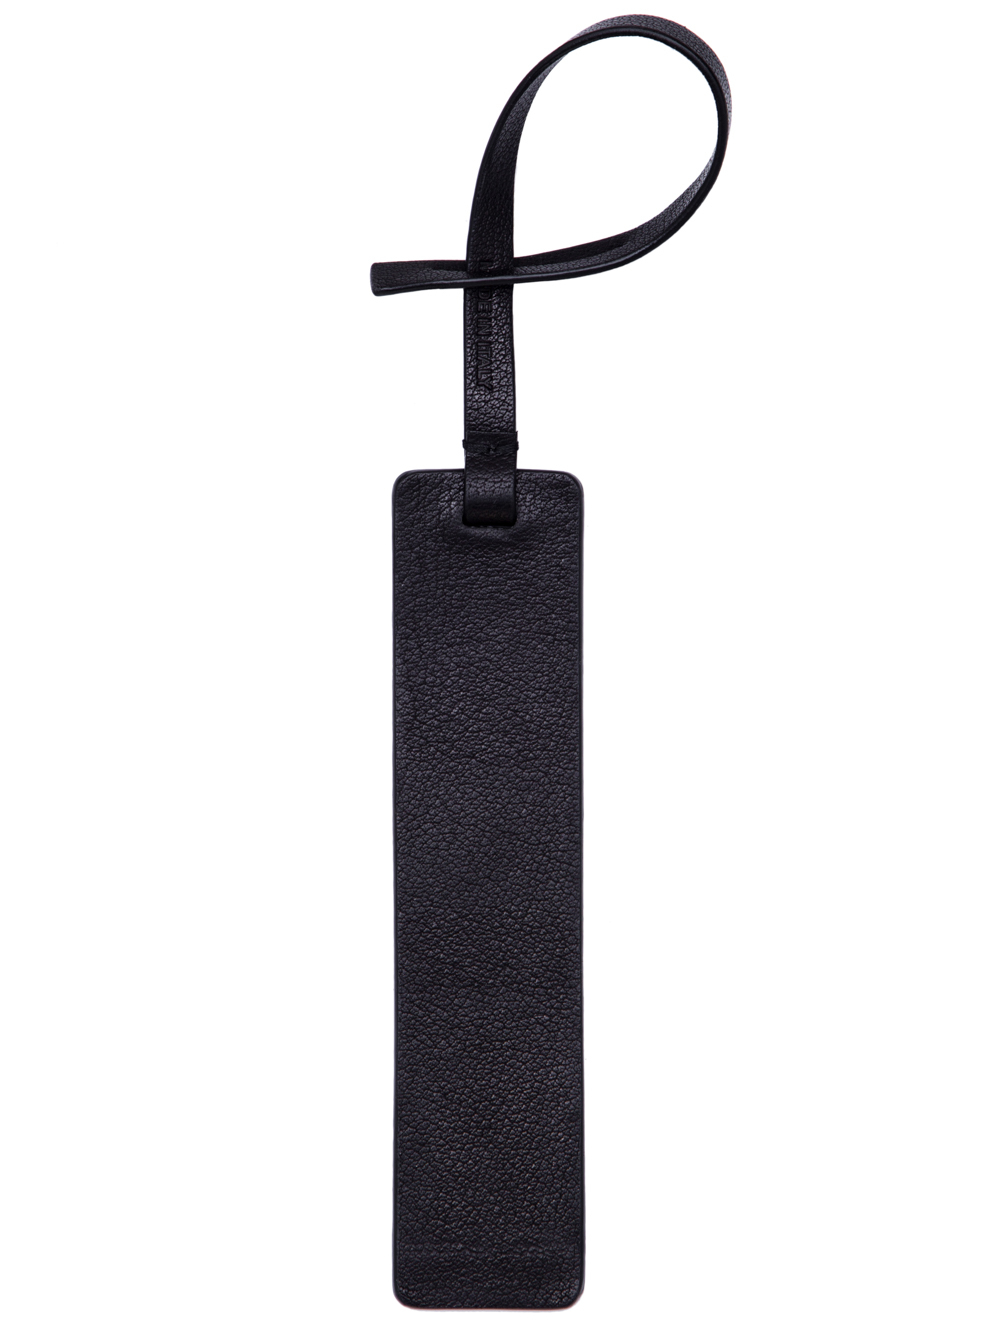 RICK OWENS SS19 BABEL TAG AMULET IN BLACK BUFFALO LEATHER